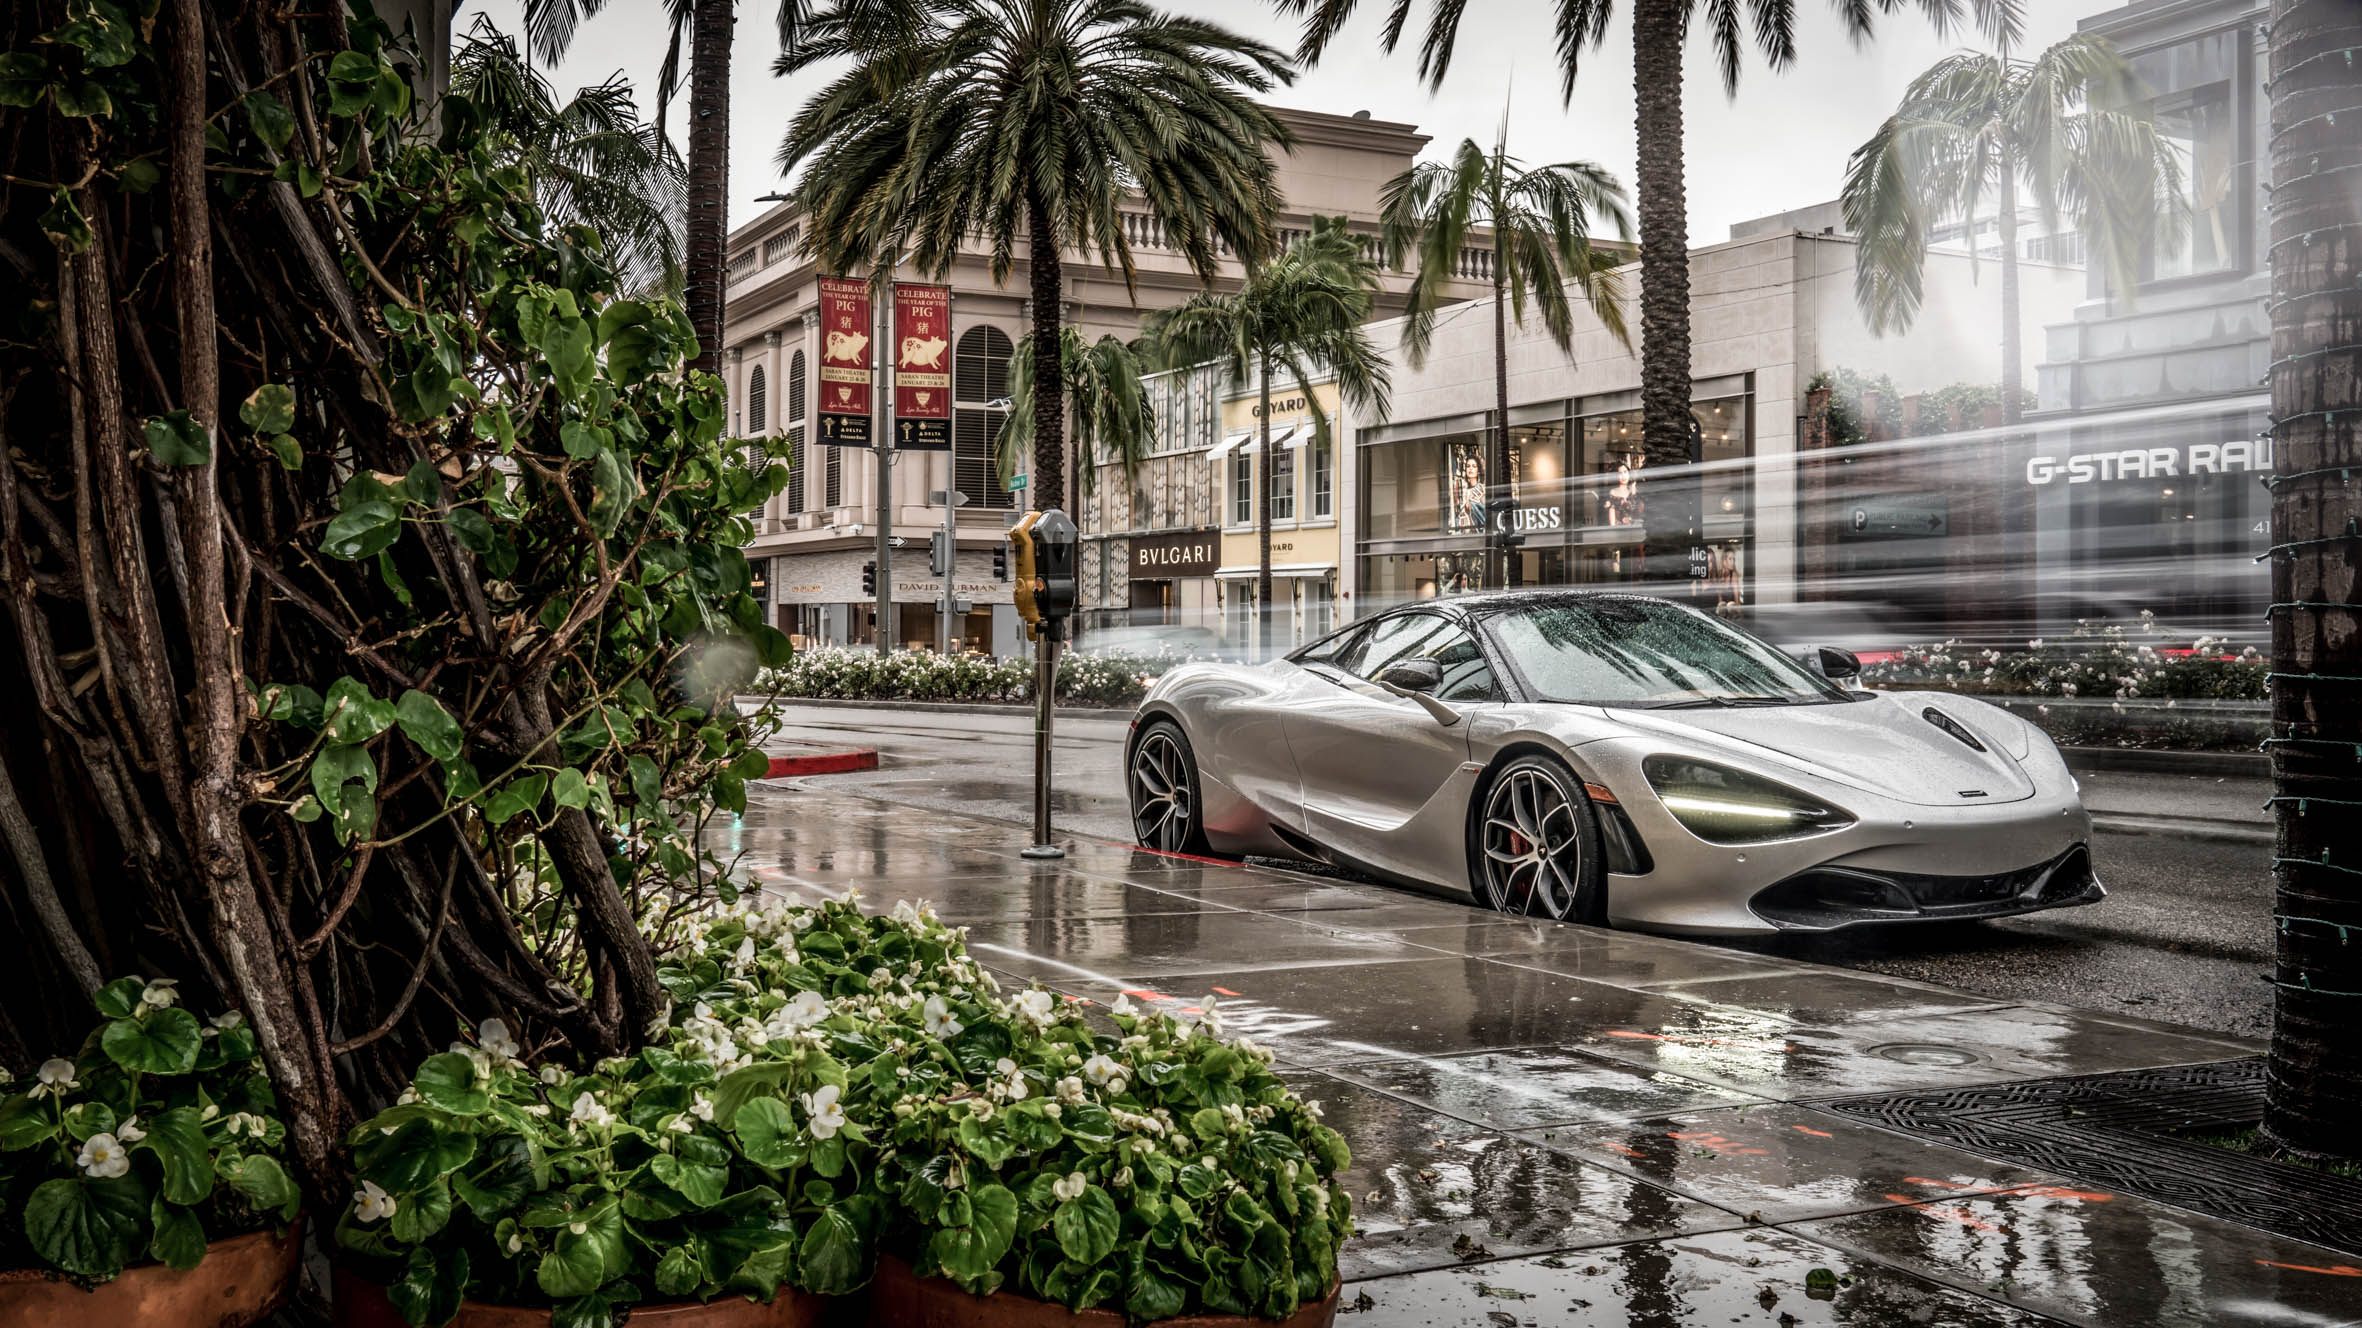 2019 MCLAREN 720S SPIDER ARRIVES AT MCLAREN BEVERLY HILLS